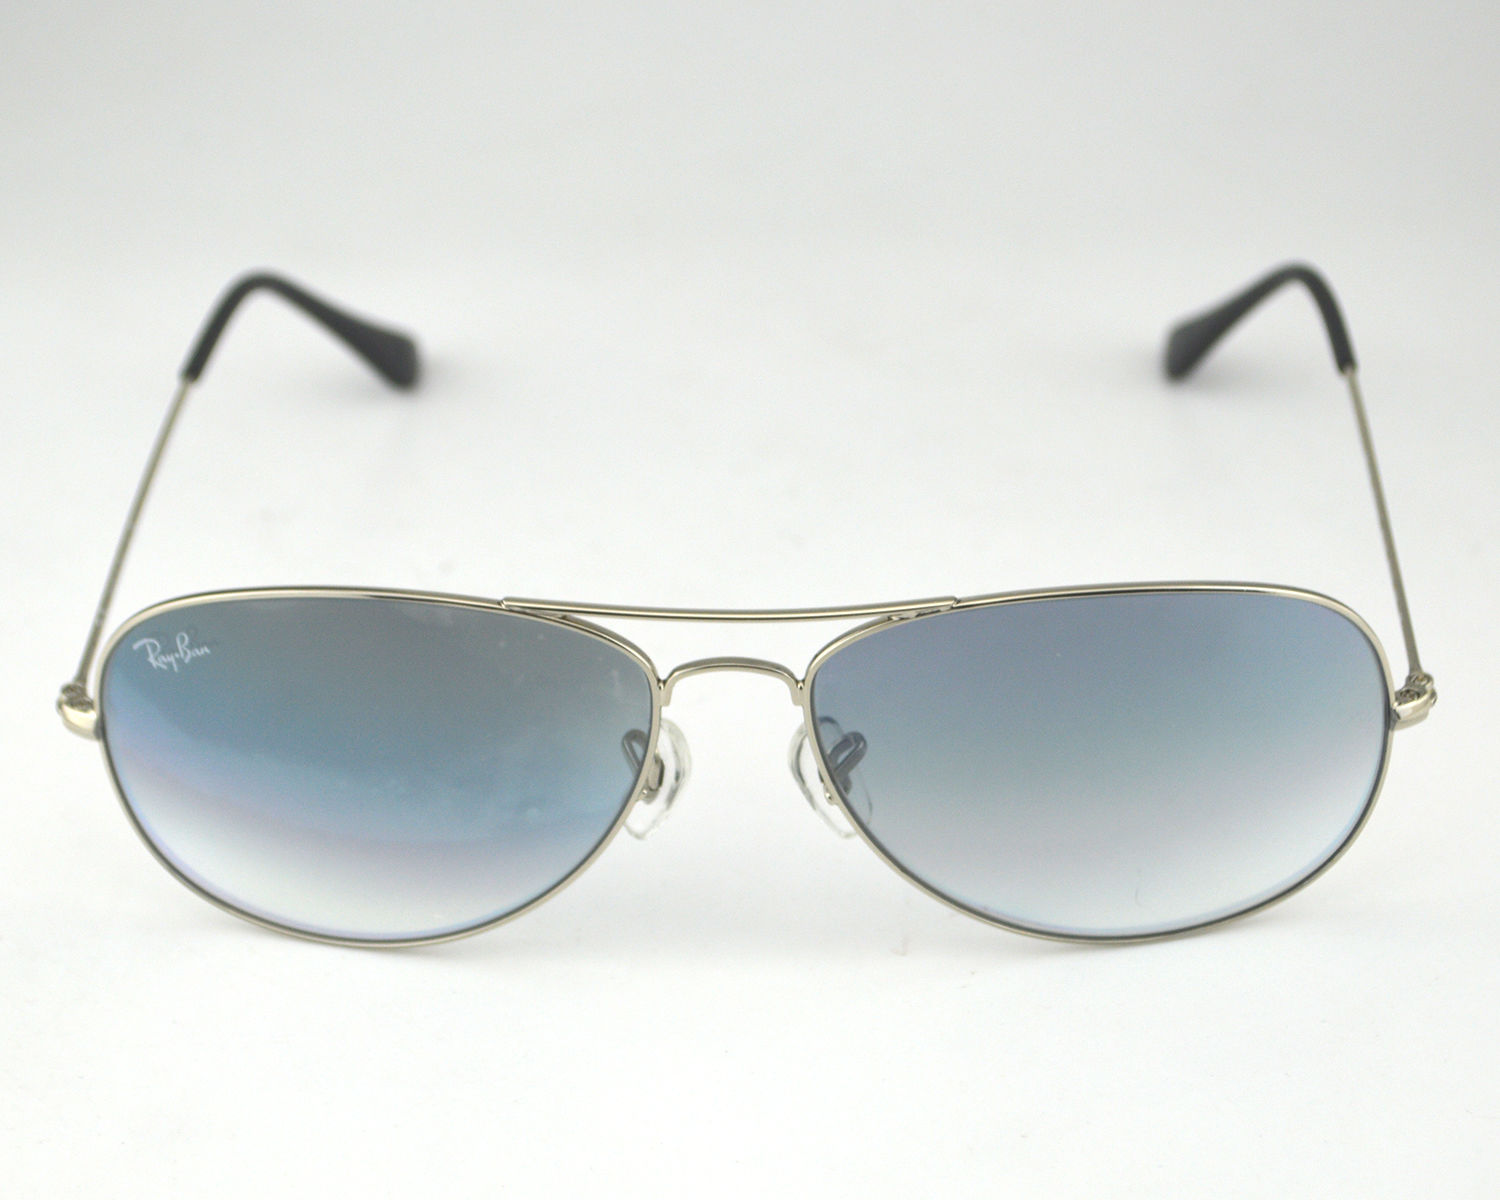 83a1d8029d Ray Ban RB 3362 Cockpit 003 32 Light Grey Gradient Glass Lens Unisex  Sunglasses 59mm